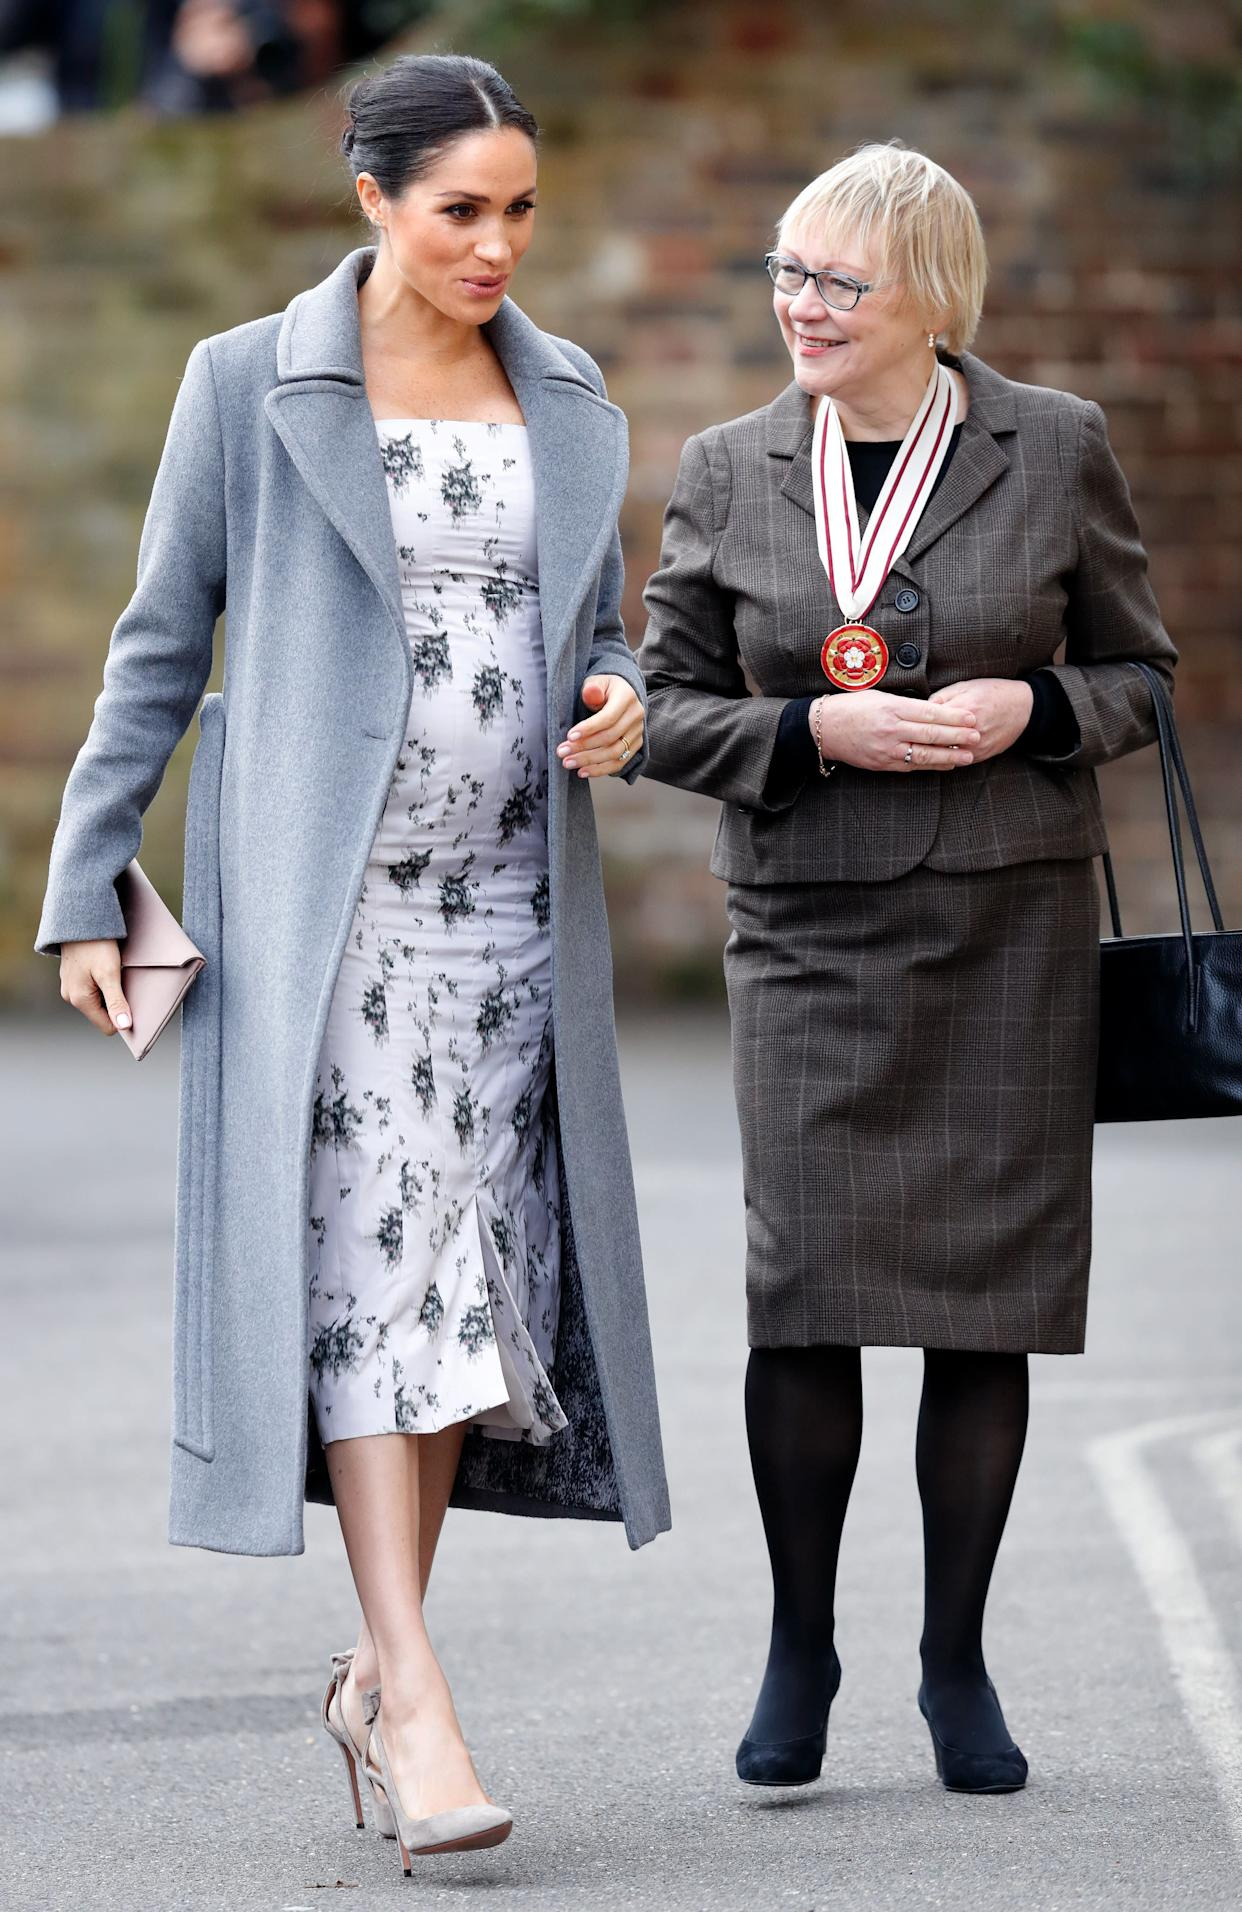 The Duchess of Sussex visits the Royal Variety Charity's Brinsworth House in Twickenham, England.